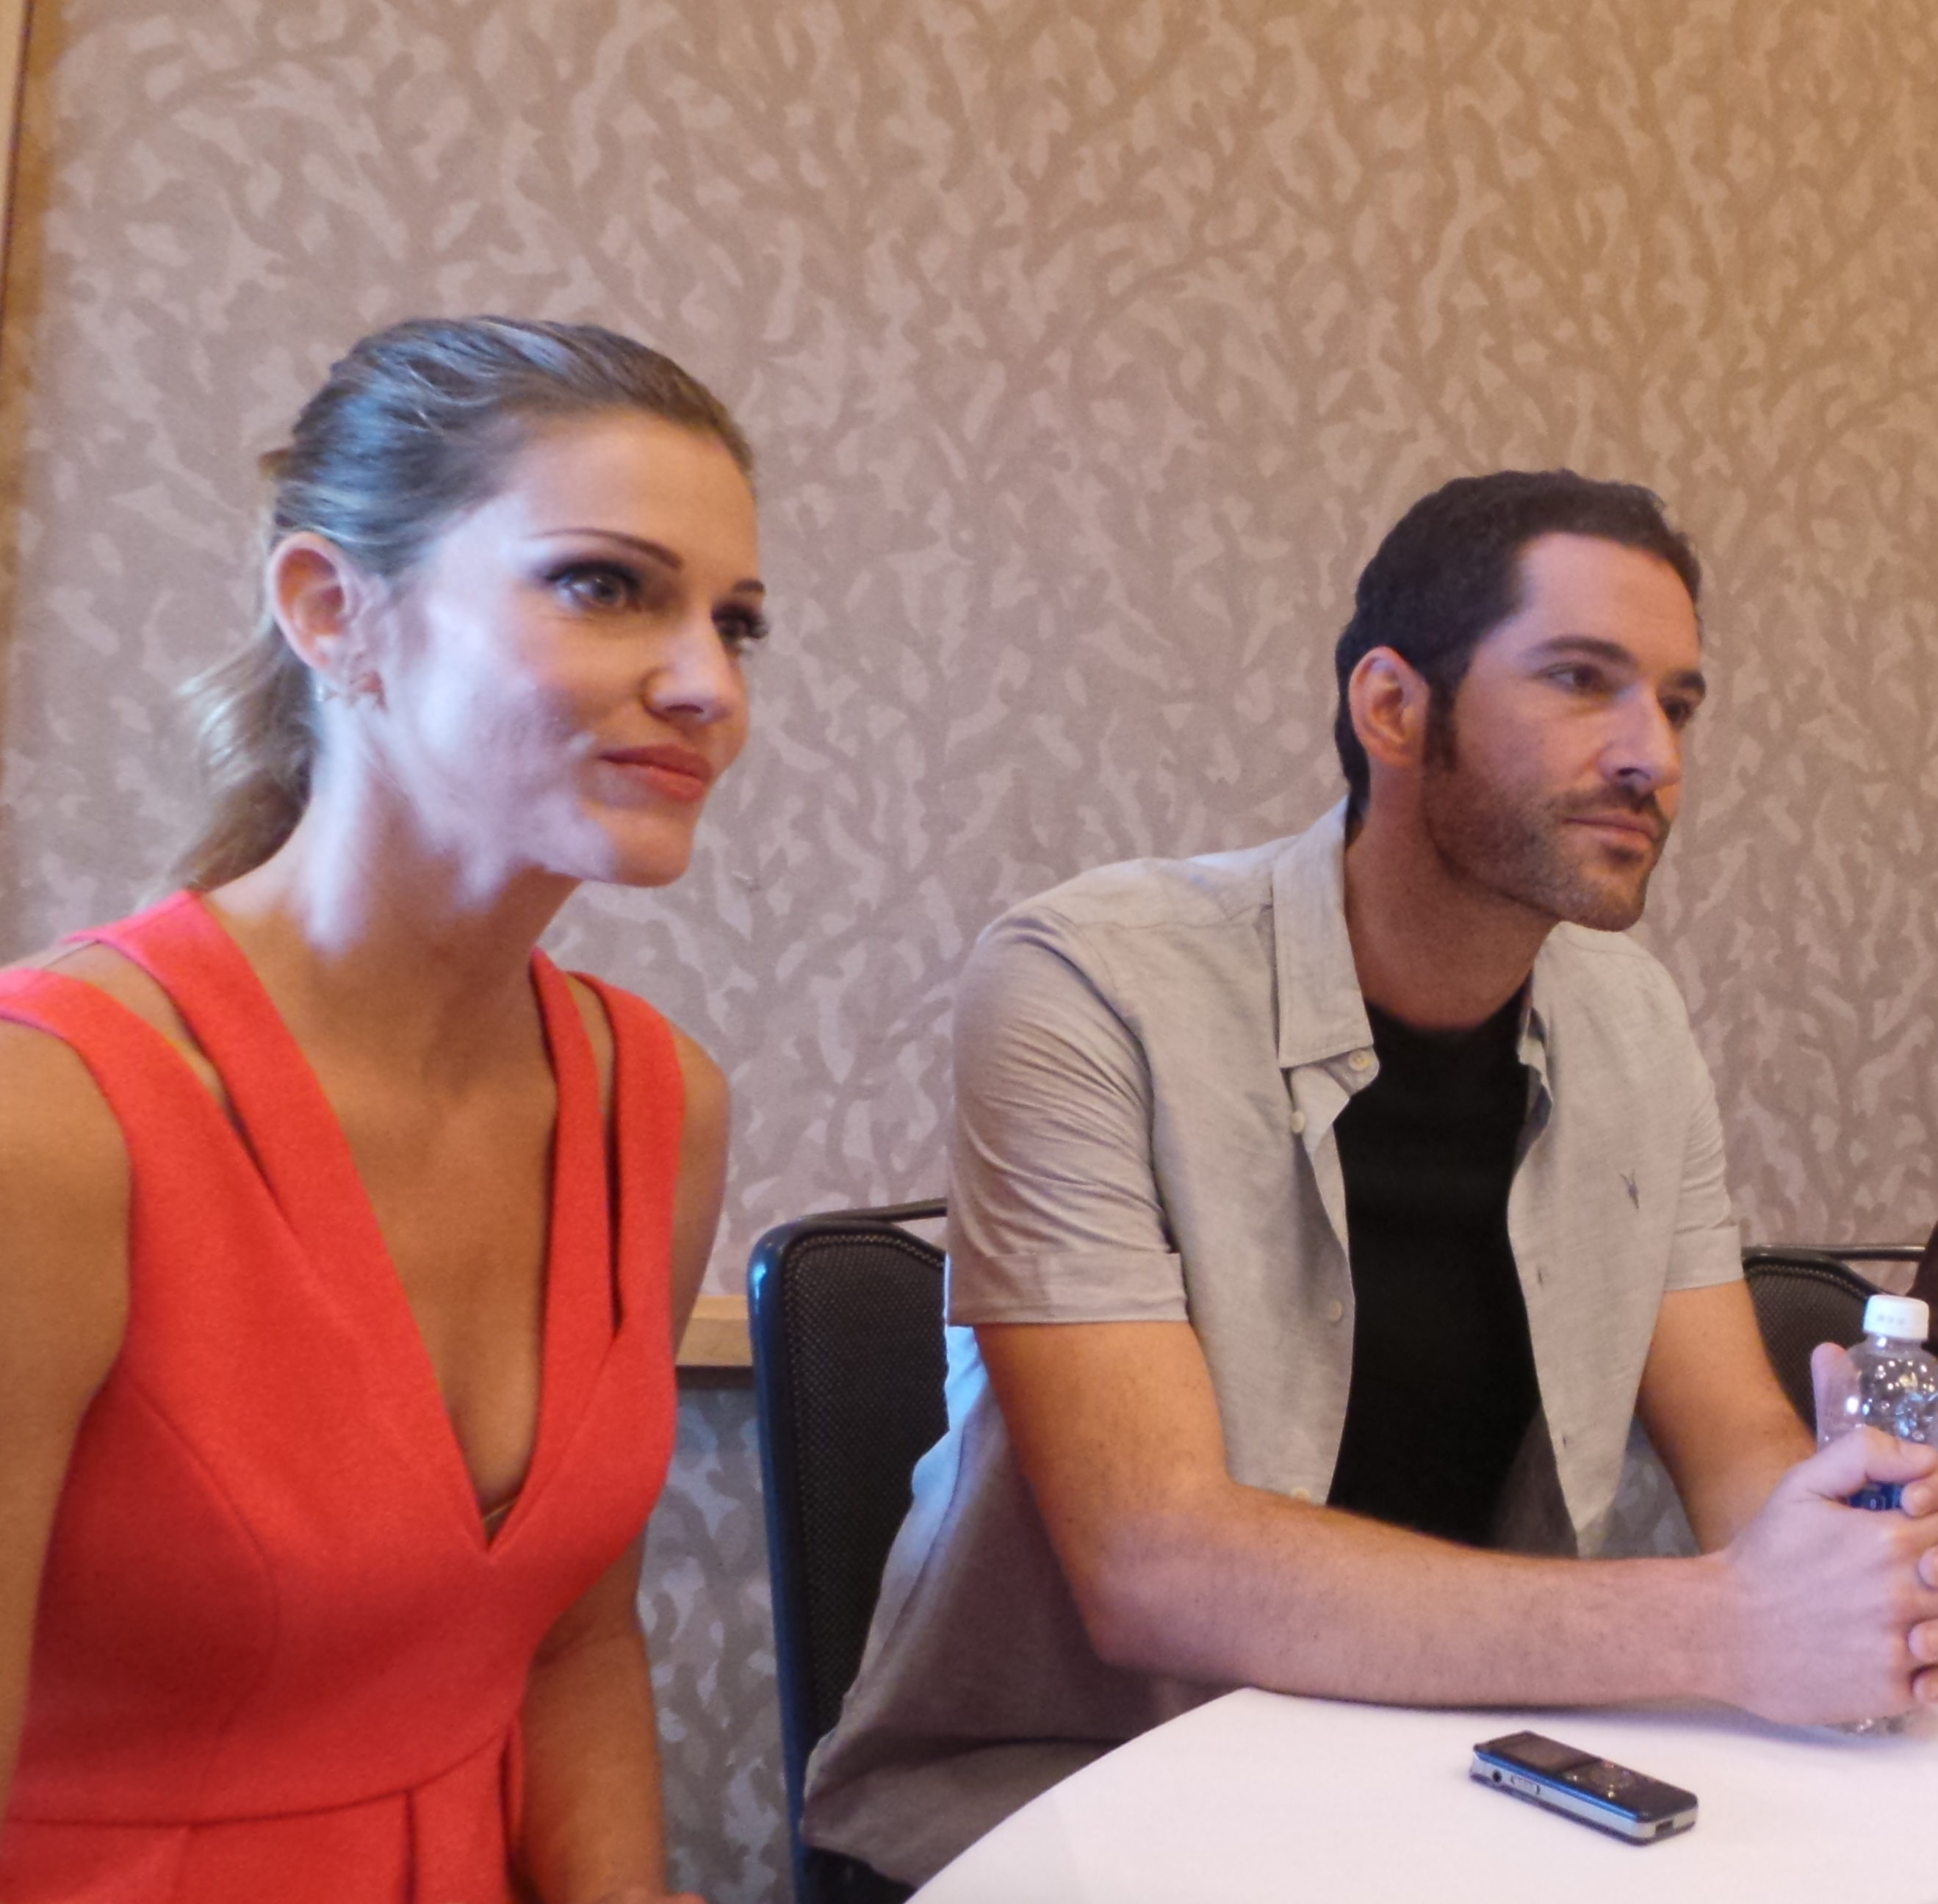 Tom Ellis (Lucifer Morningstar) and Tricia Helfer (will debut in season 2 as The Mother of Angels)